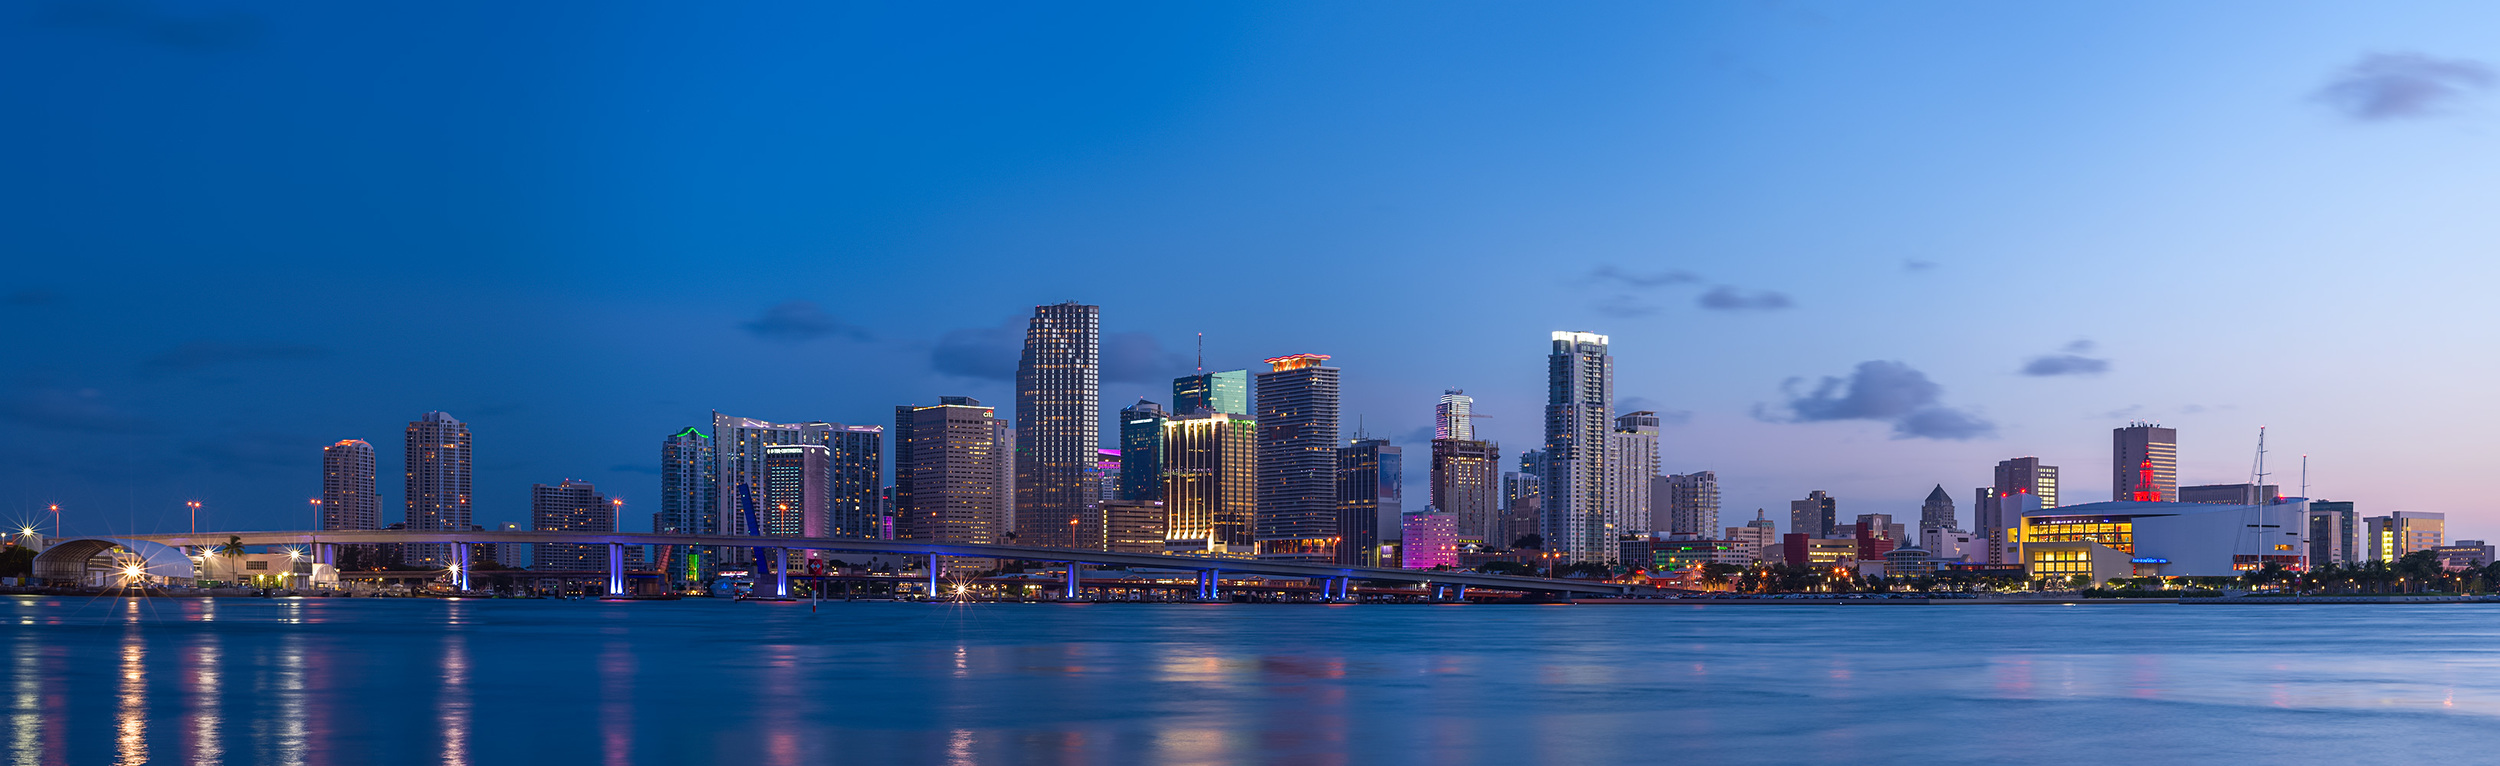 The Miami Skyline, this time from underneath MacArthur Causeway (the infamous one with the face eating crazy man).